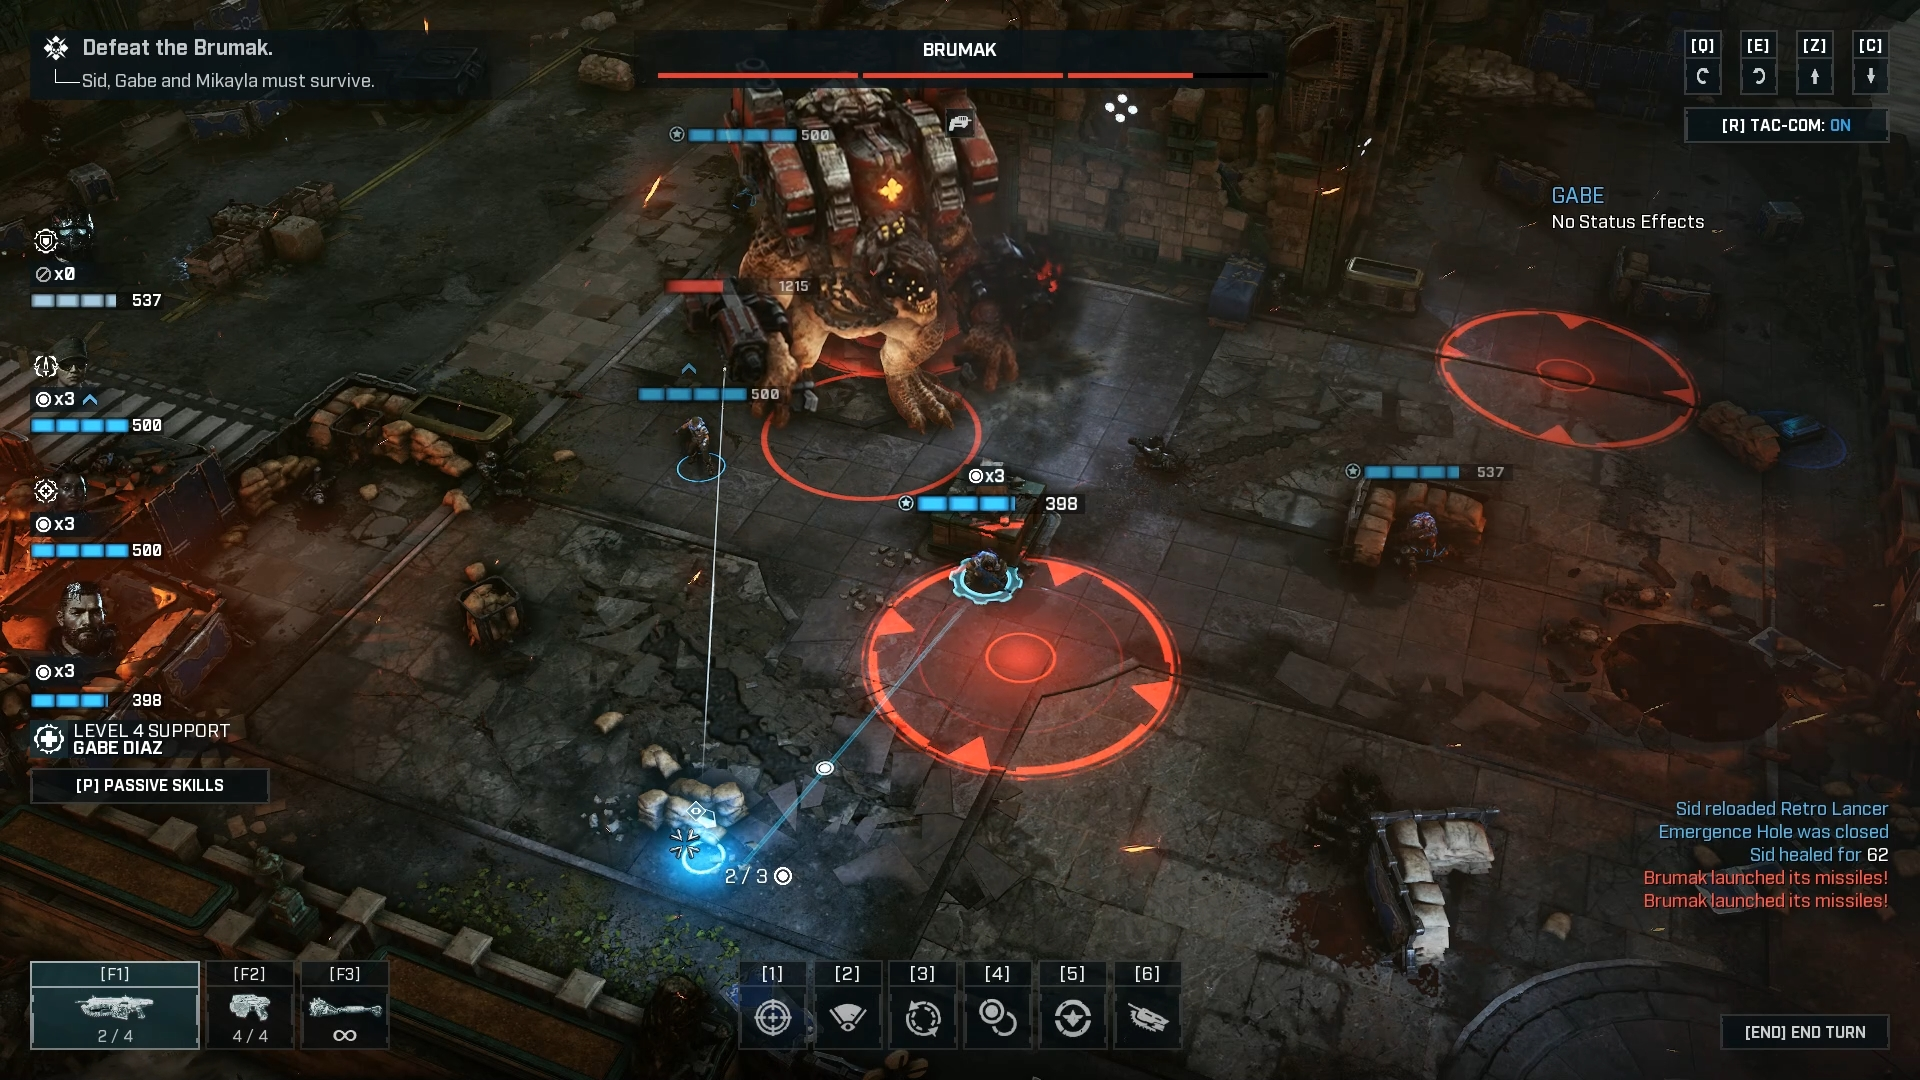 A screenshot from Gears Tactics showing the squad arrayed around a large enemy brute